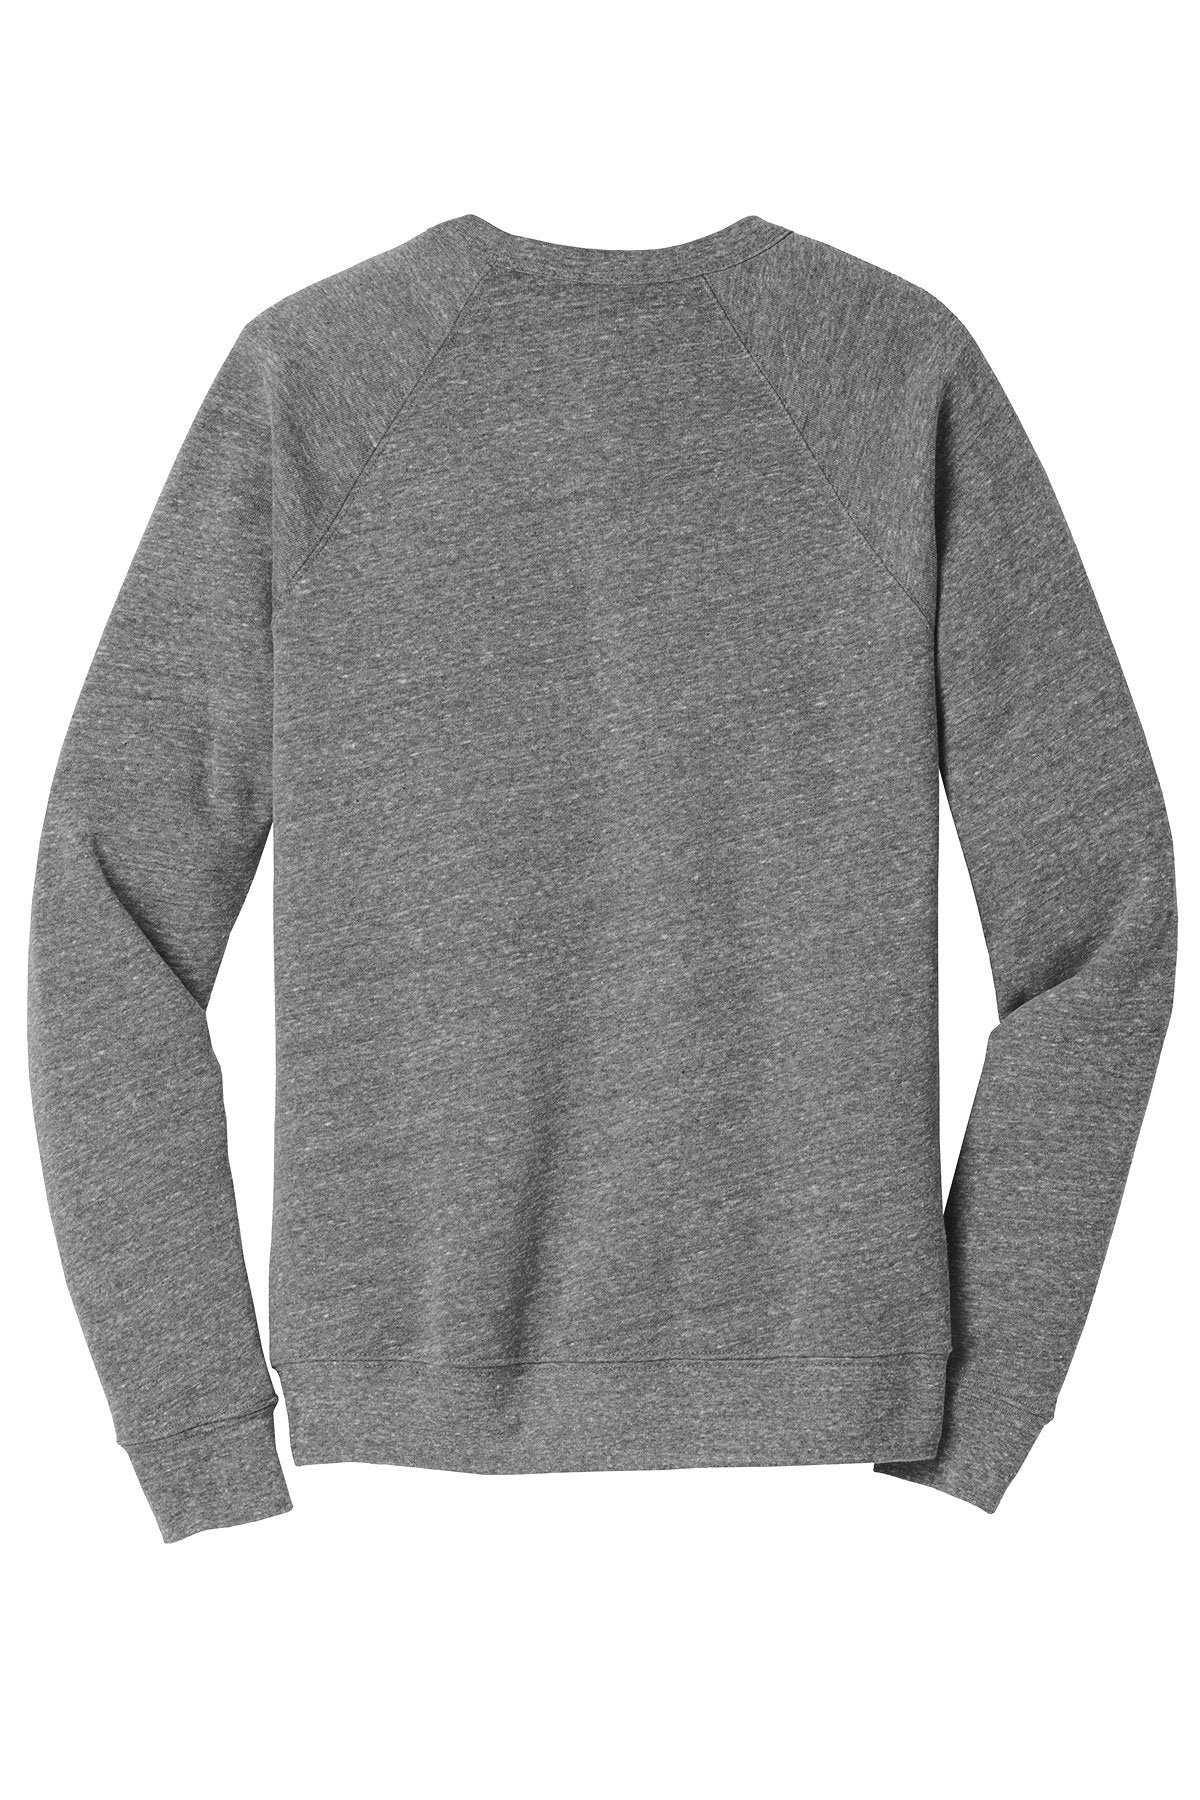 Ummm NO Women's Cozy Fleece Longsleeves Sweater Heather Grey FRONT